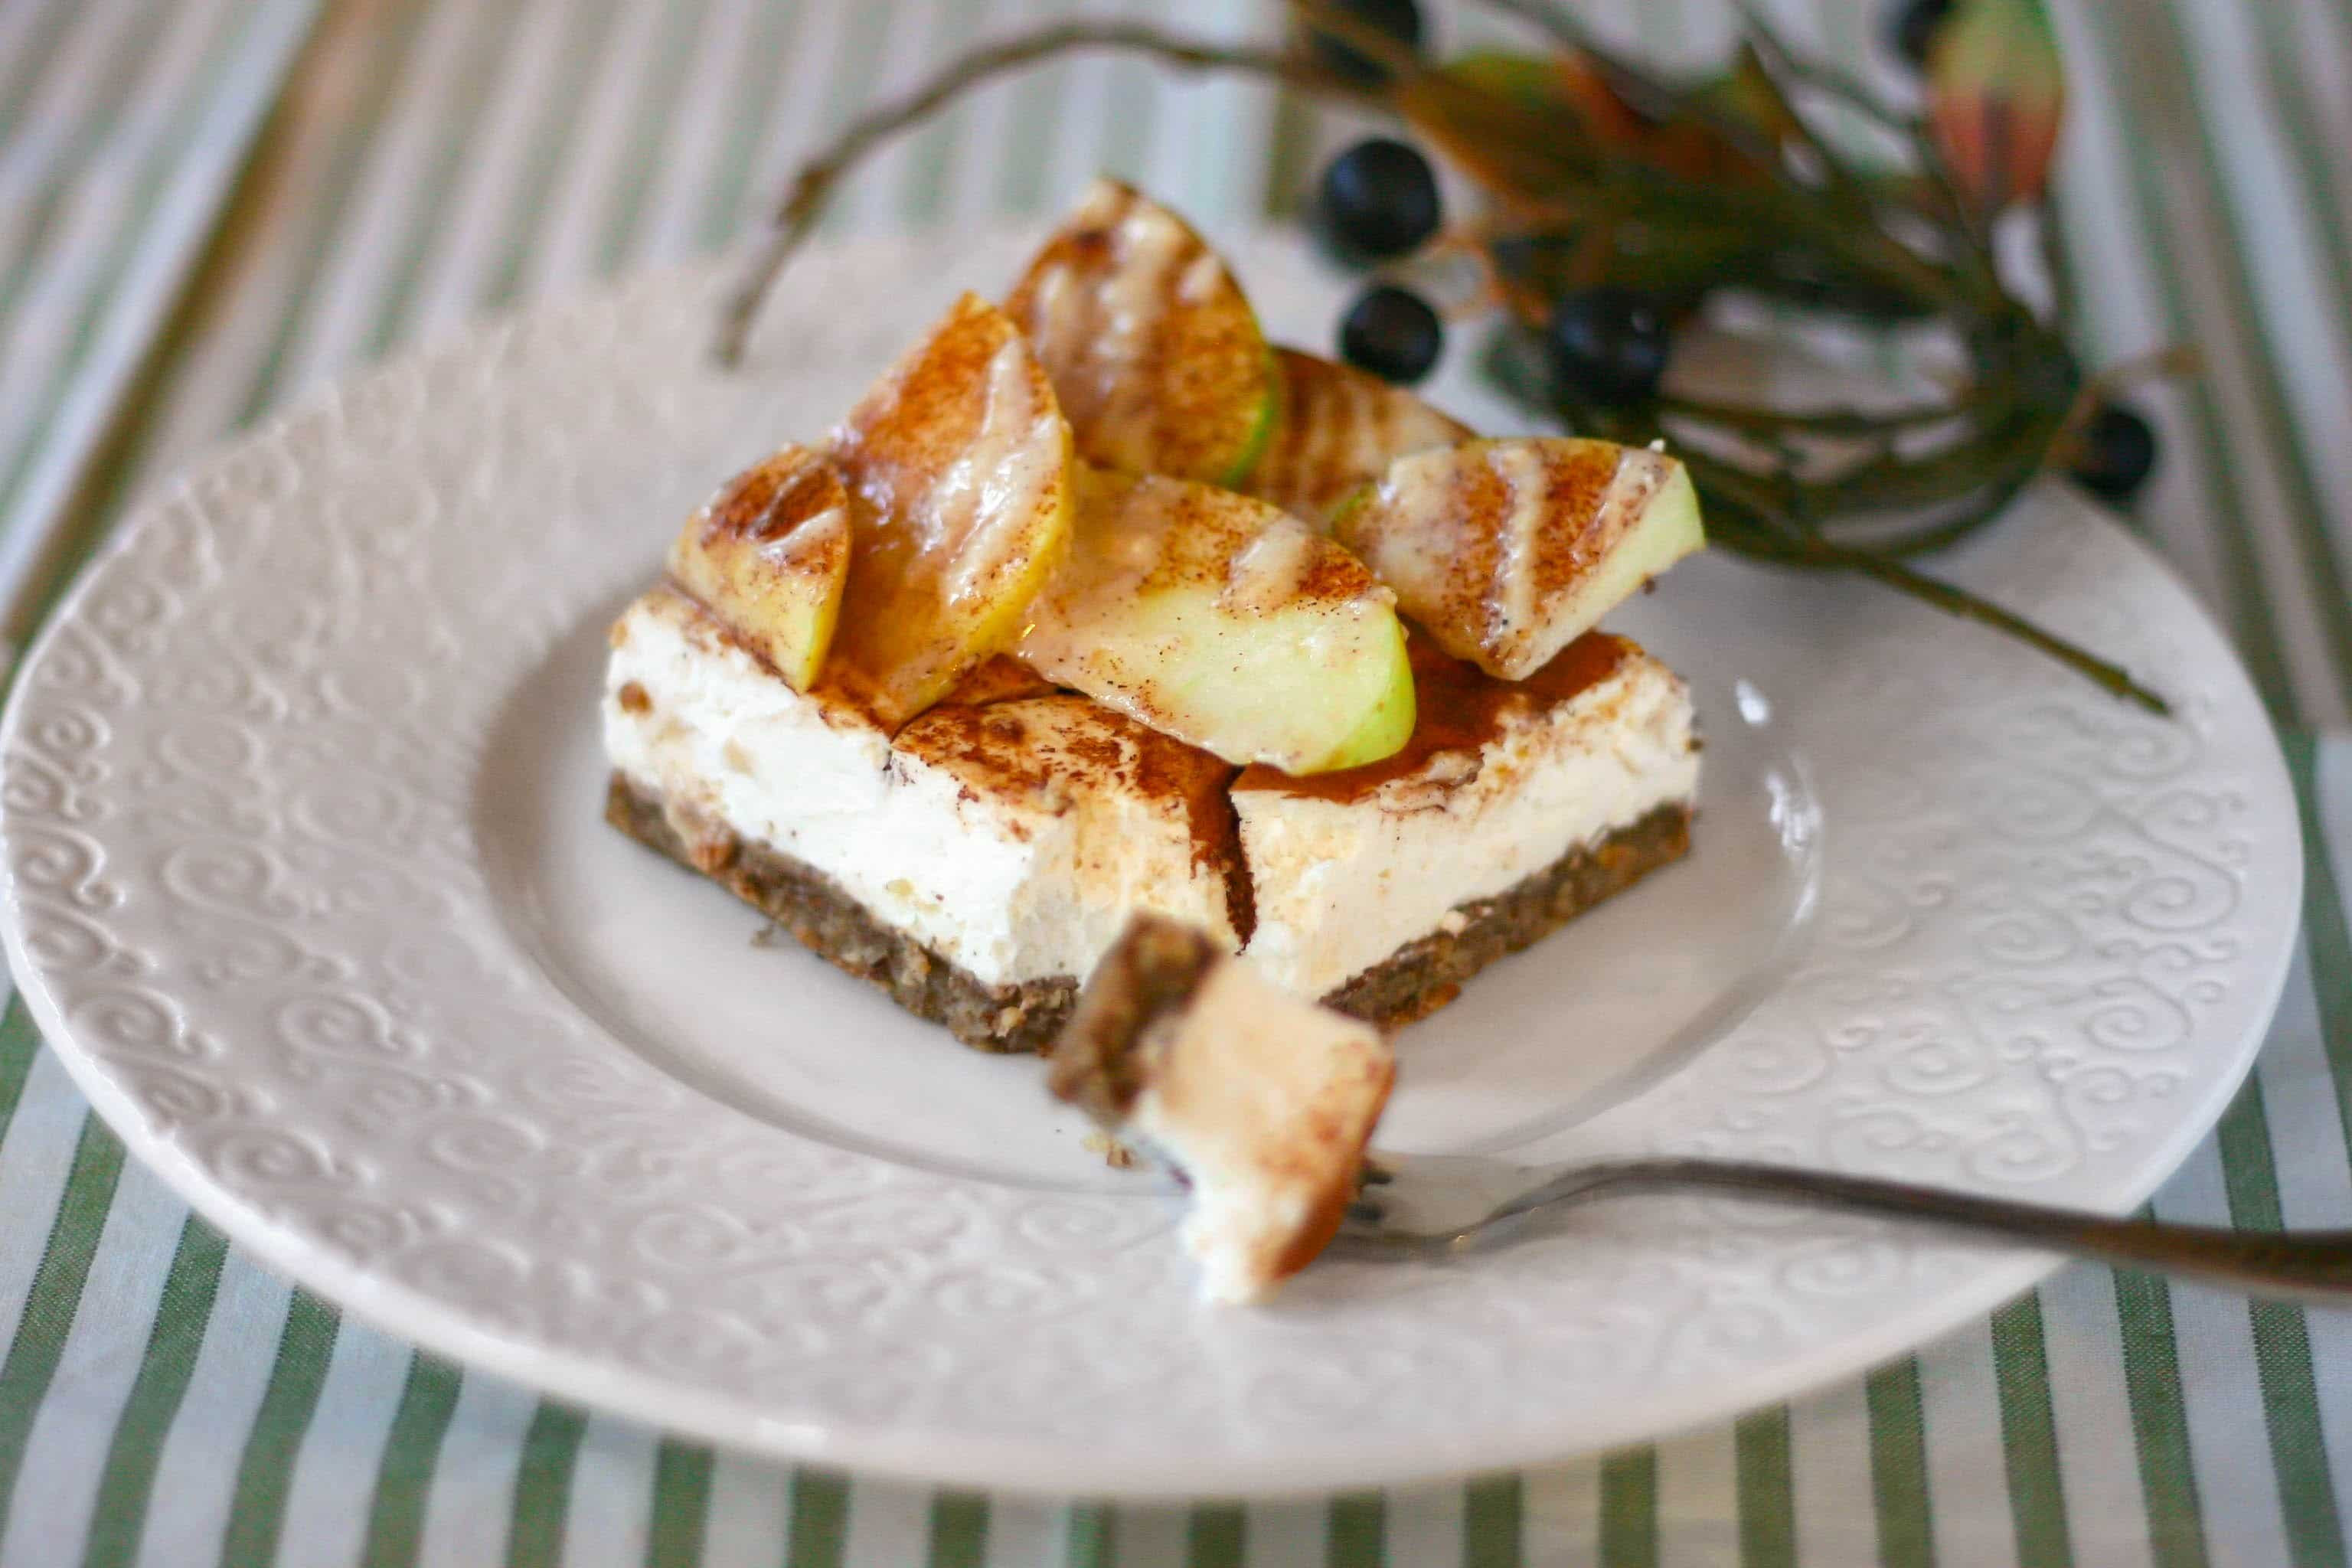 Apple Pie Cheesecake  Healthy Apple Pie Cheesecake Bars low sugar gluten free